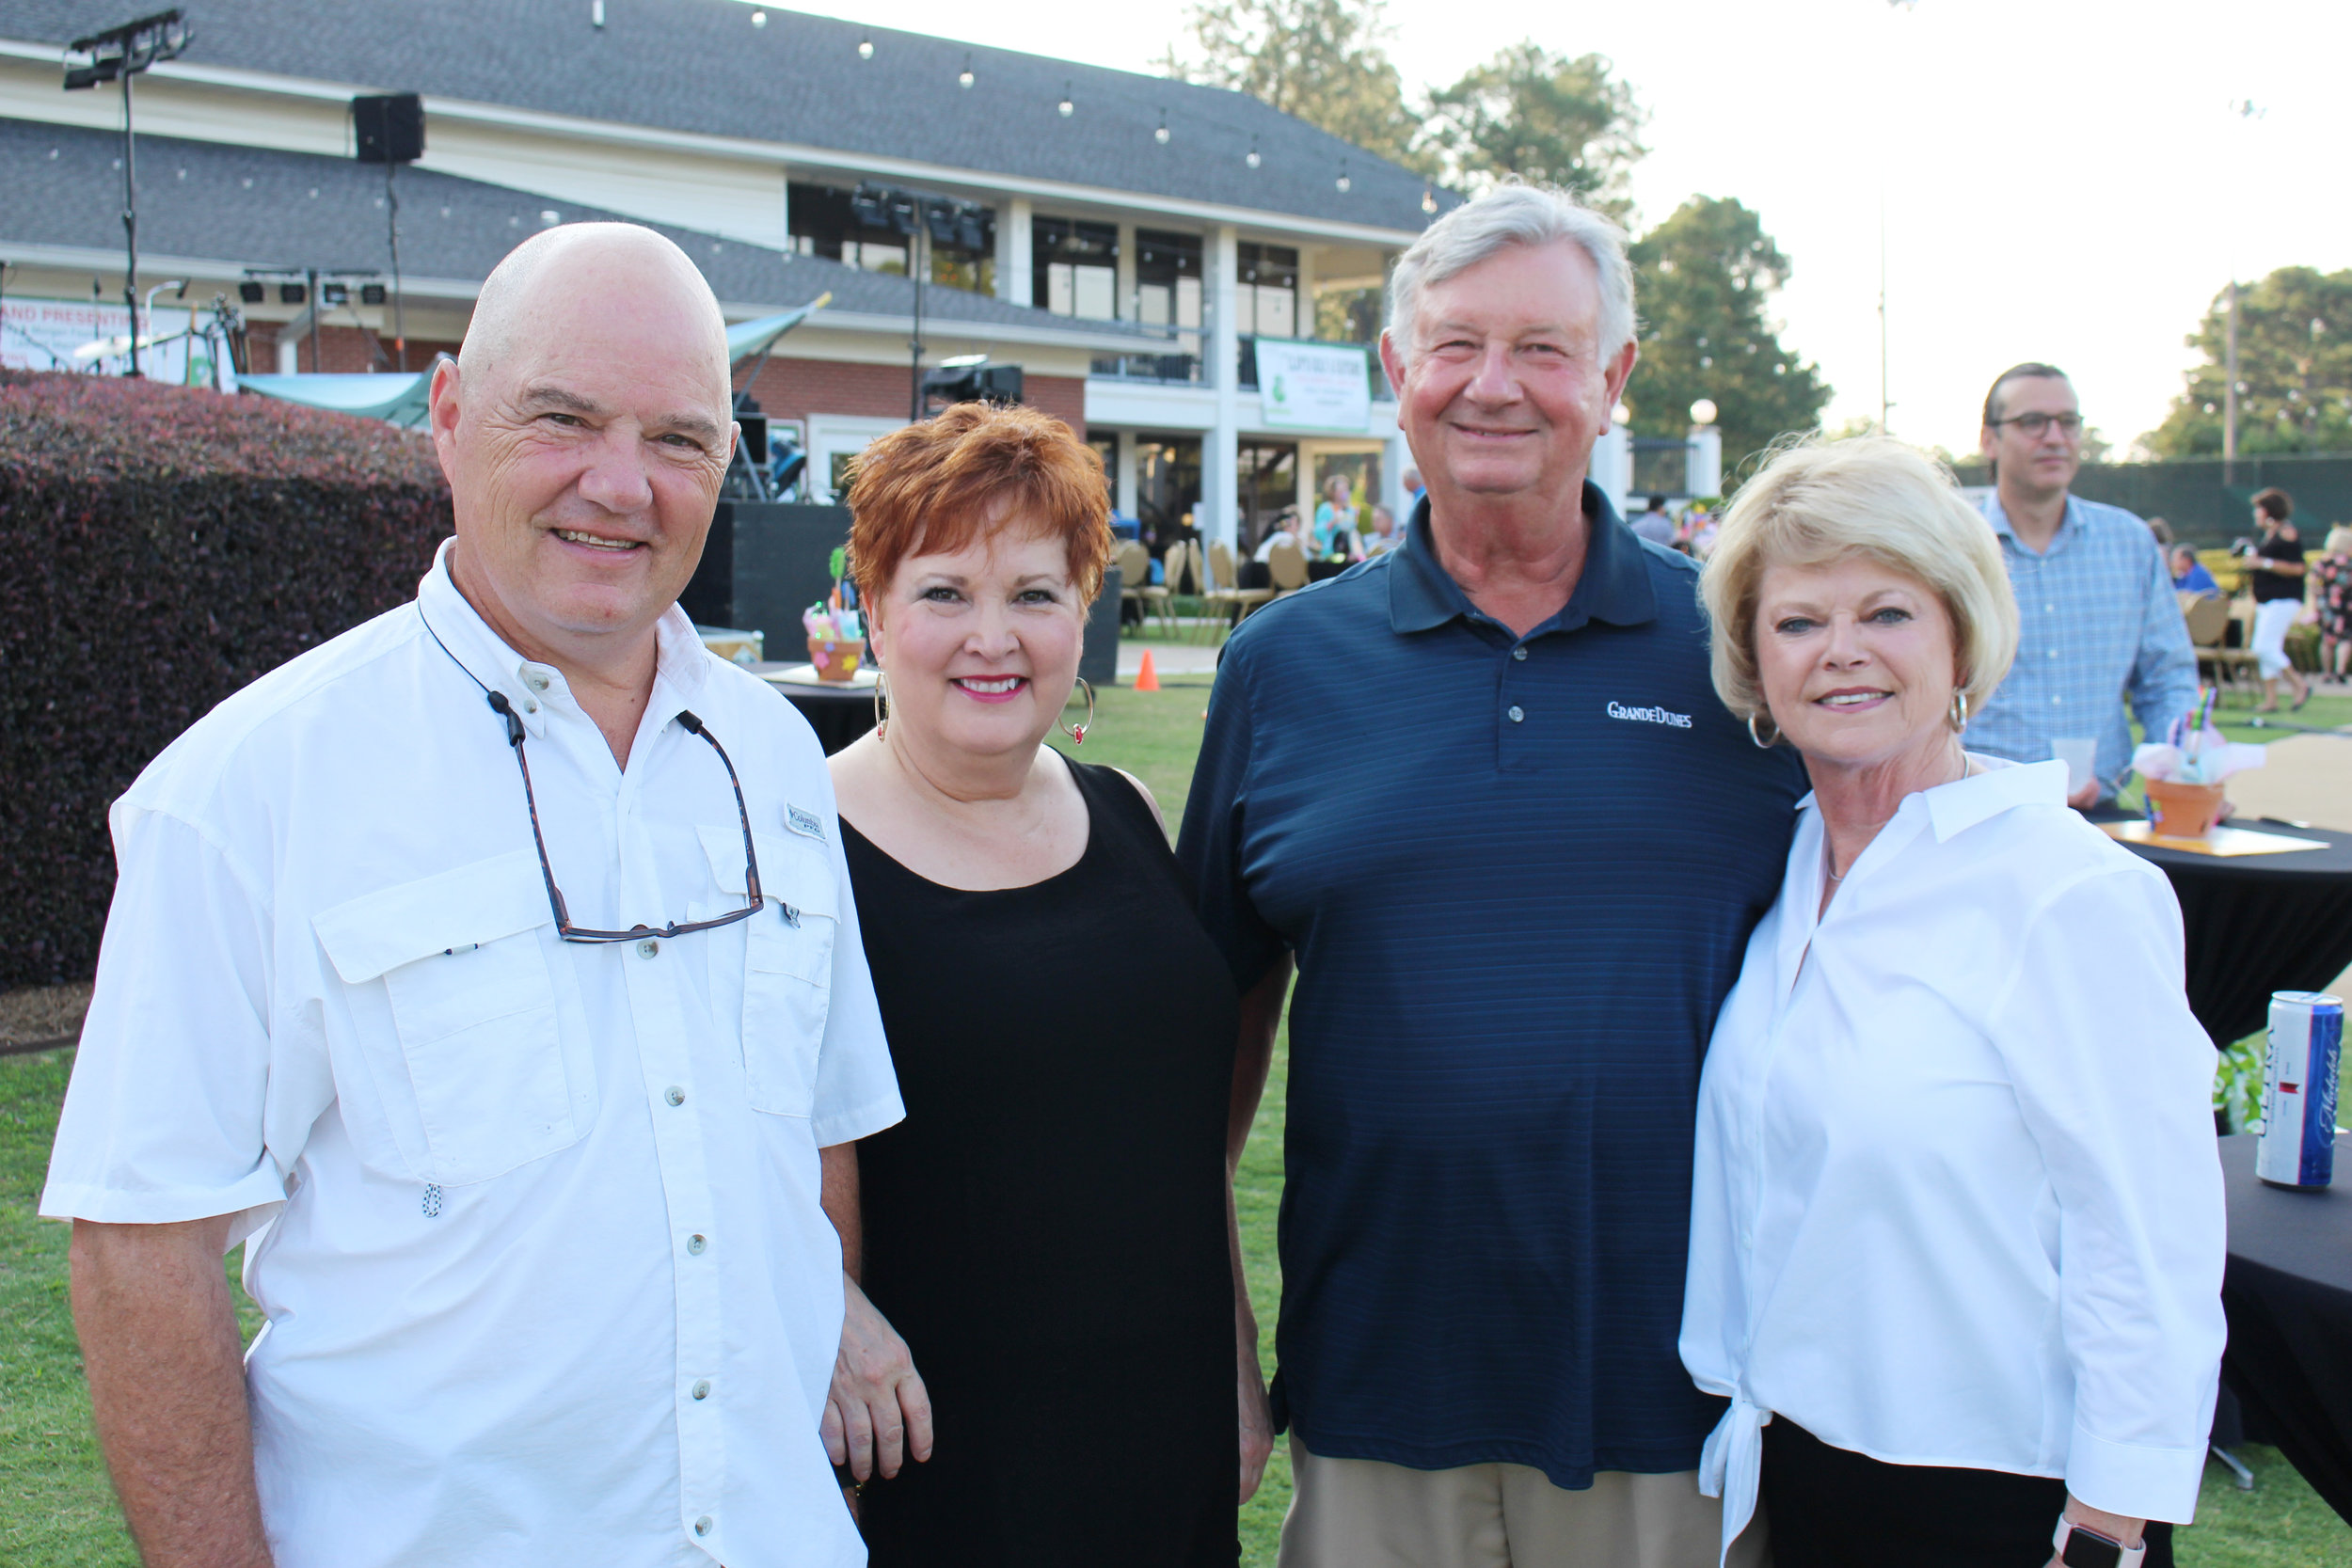 Allen and Darla Clement with Tom and Debra Moore